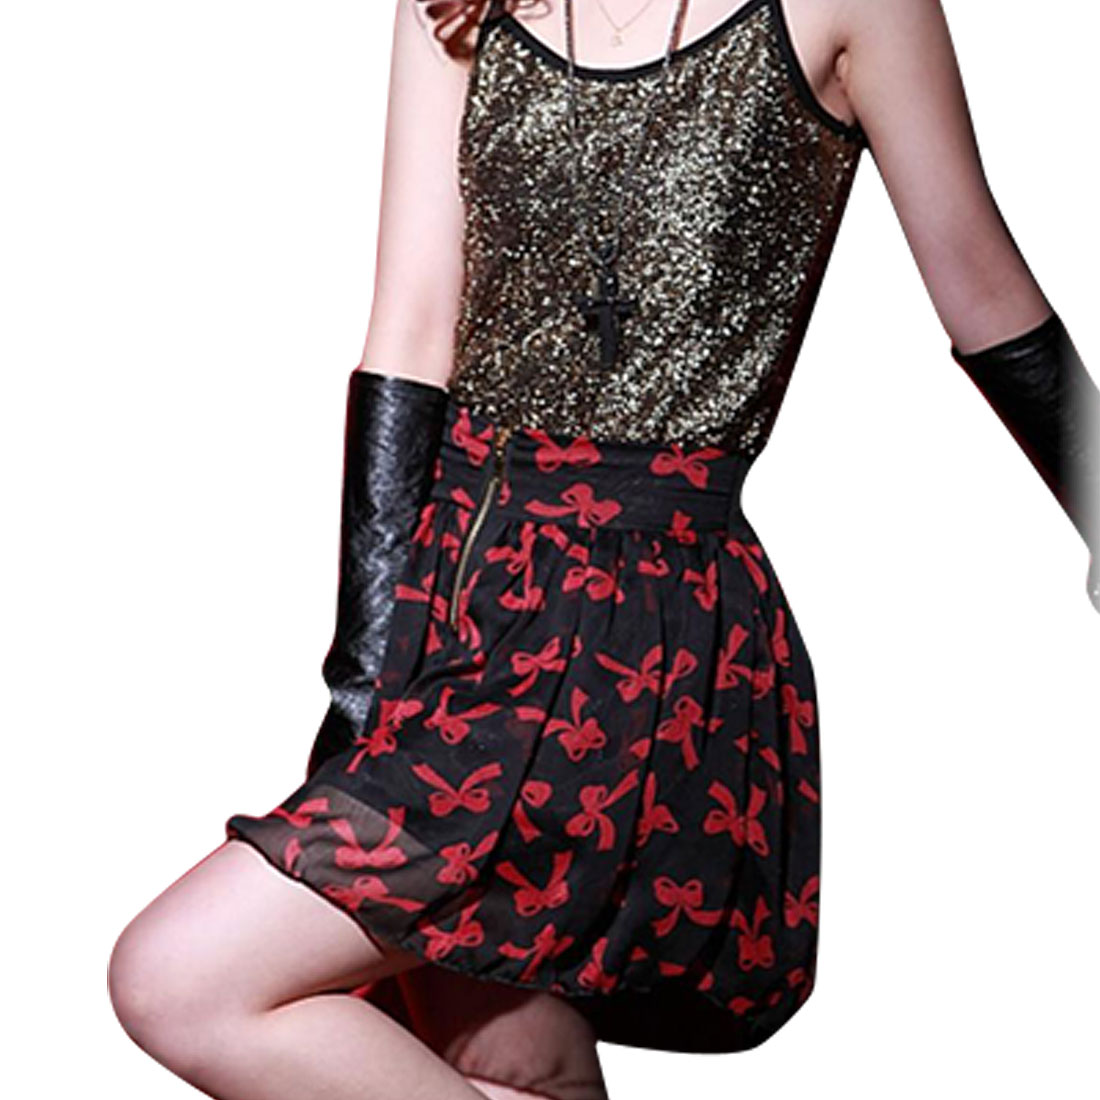 XS Red Bowtie Printed Black Chiffon Mini Flared Skirt for Lady